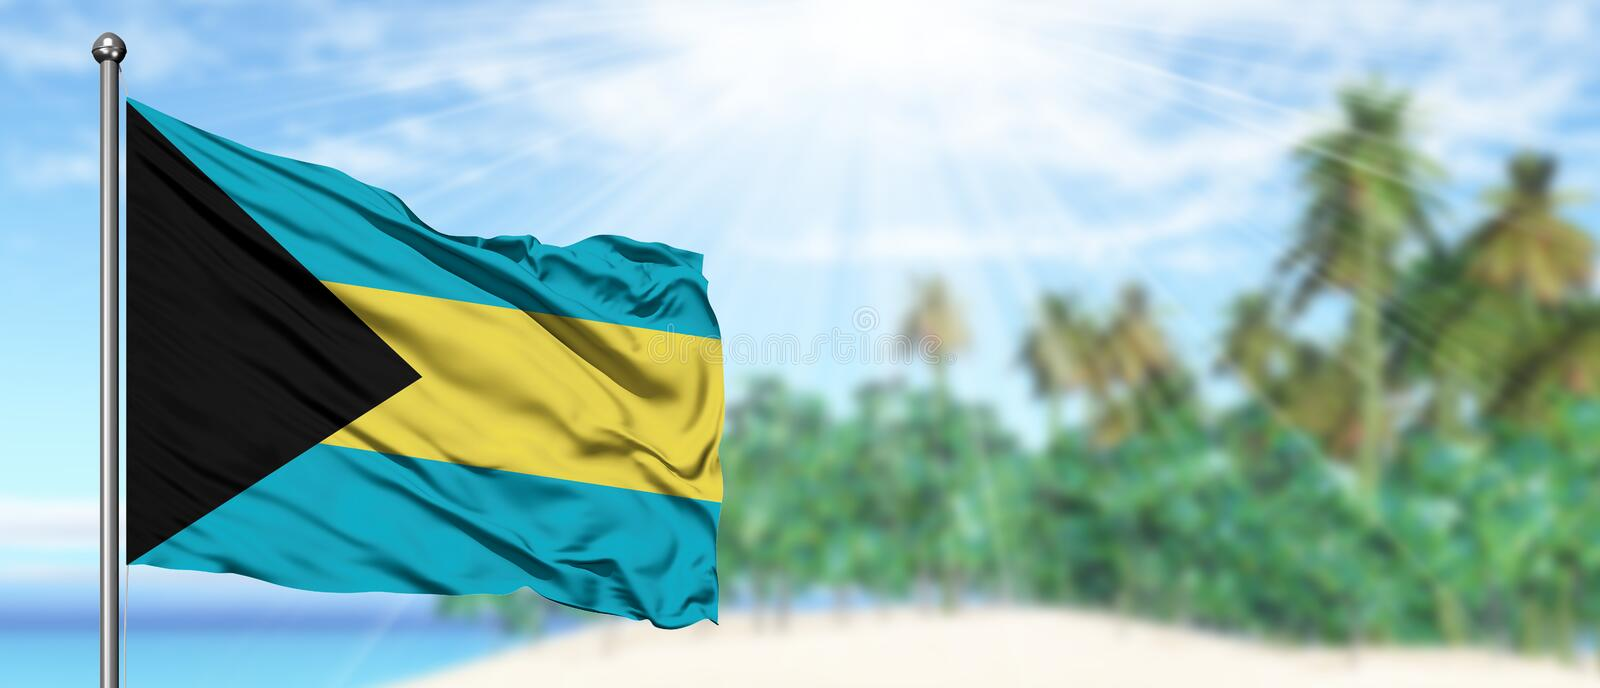 Waving Bahamas flag in the sunny blue sky with summer beach background. Vacation theme, holiday concept stock image